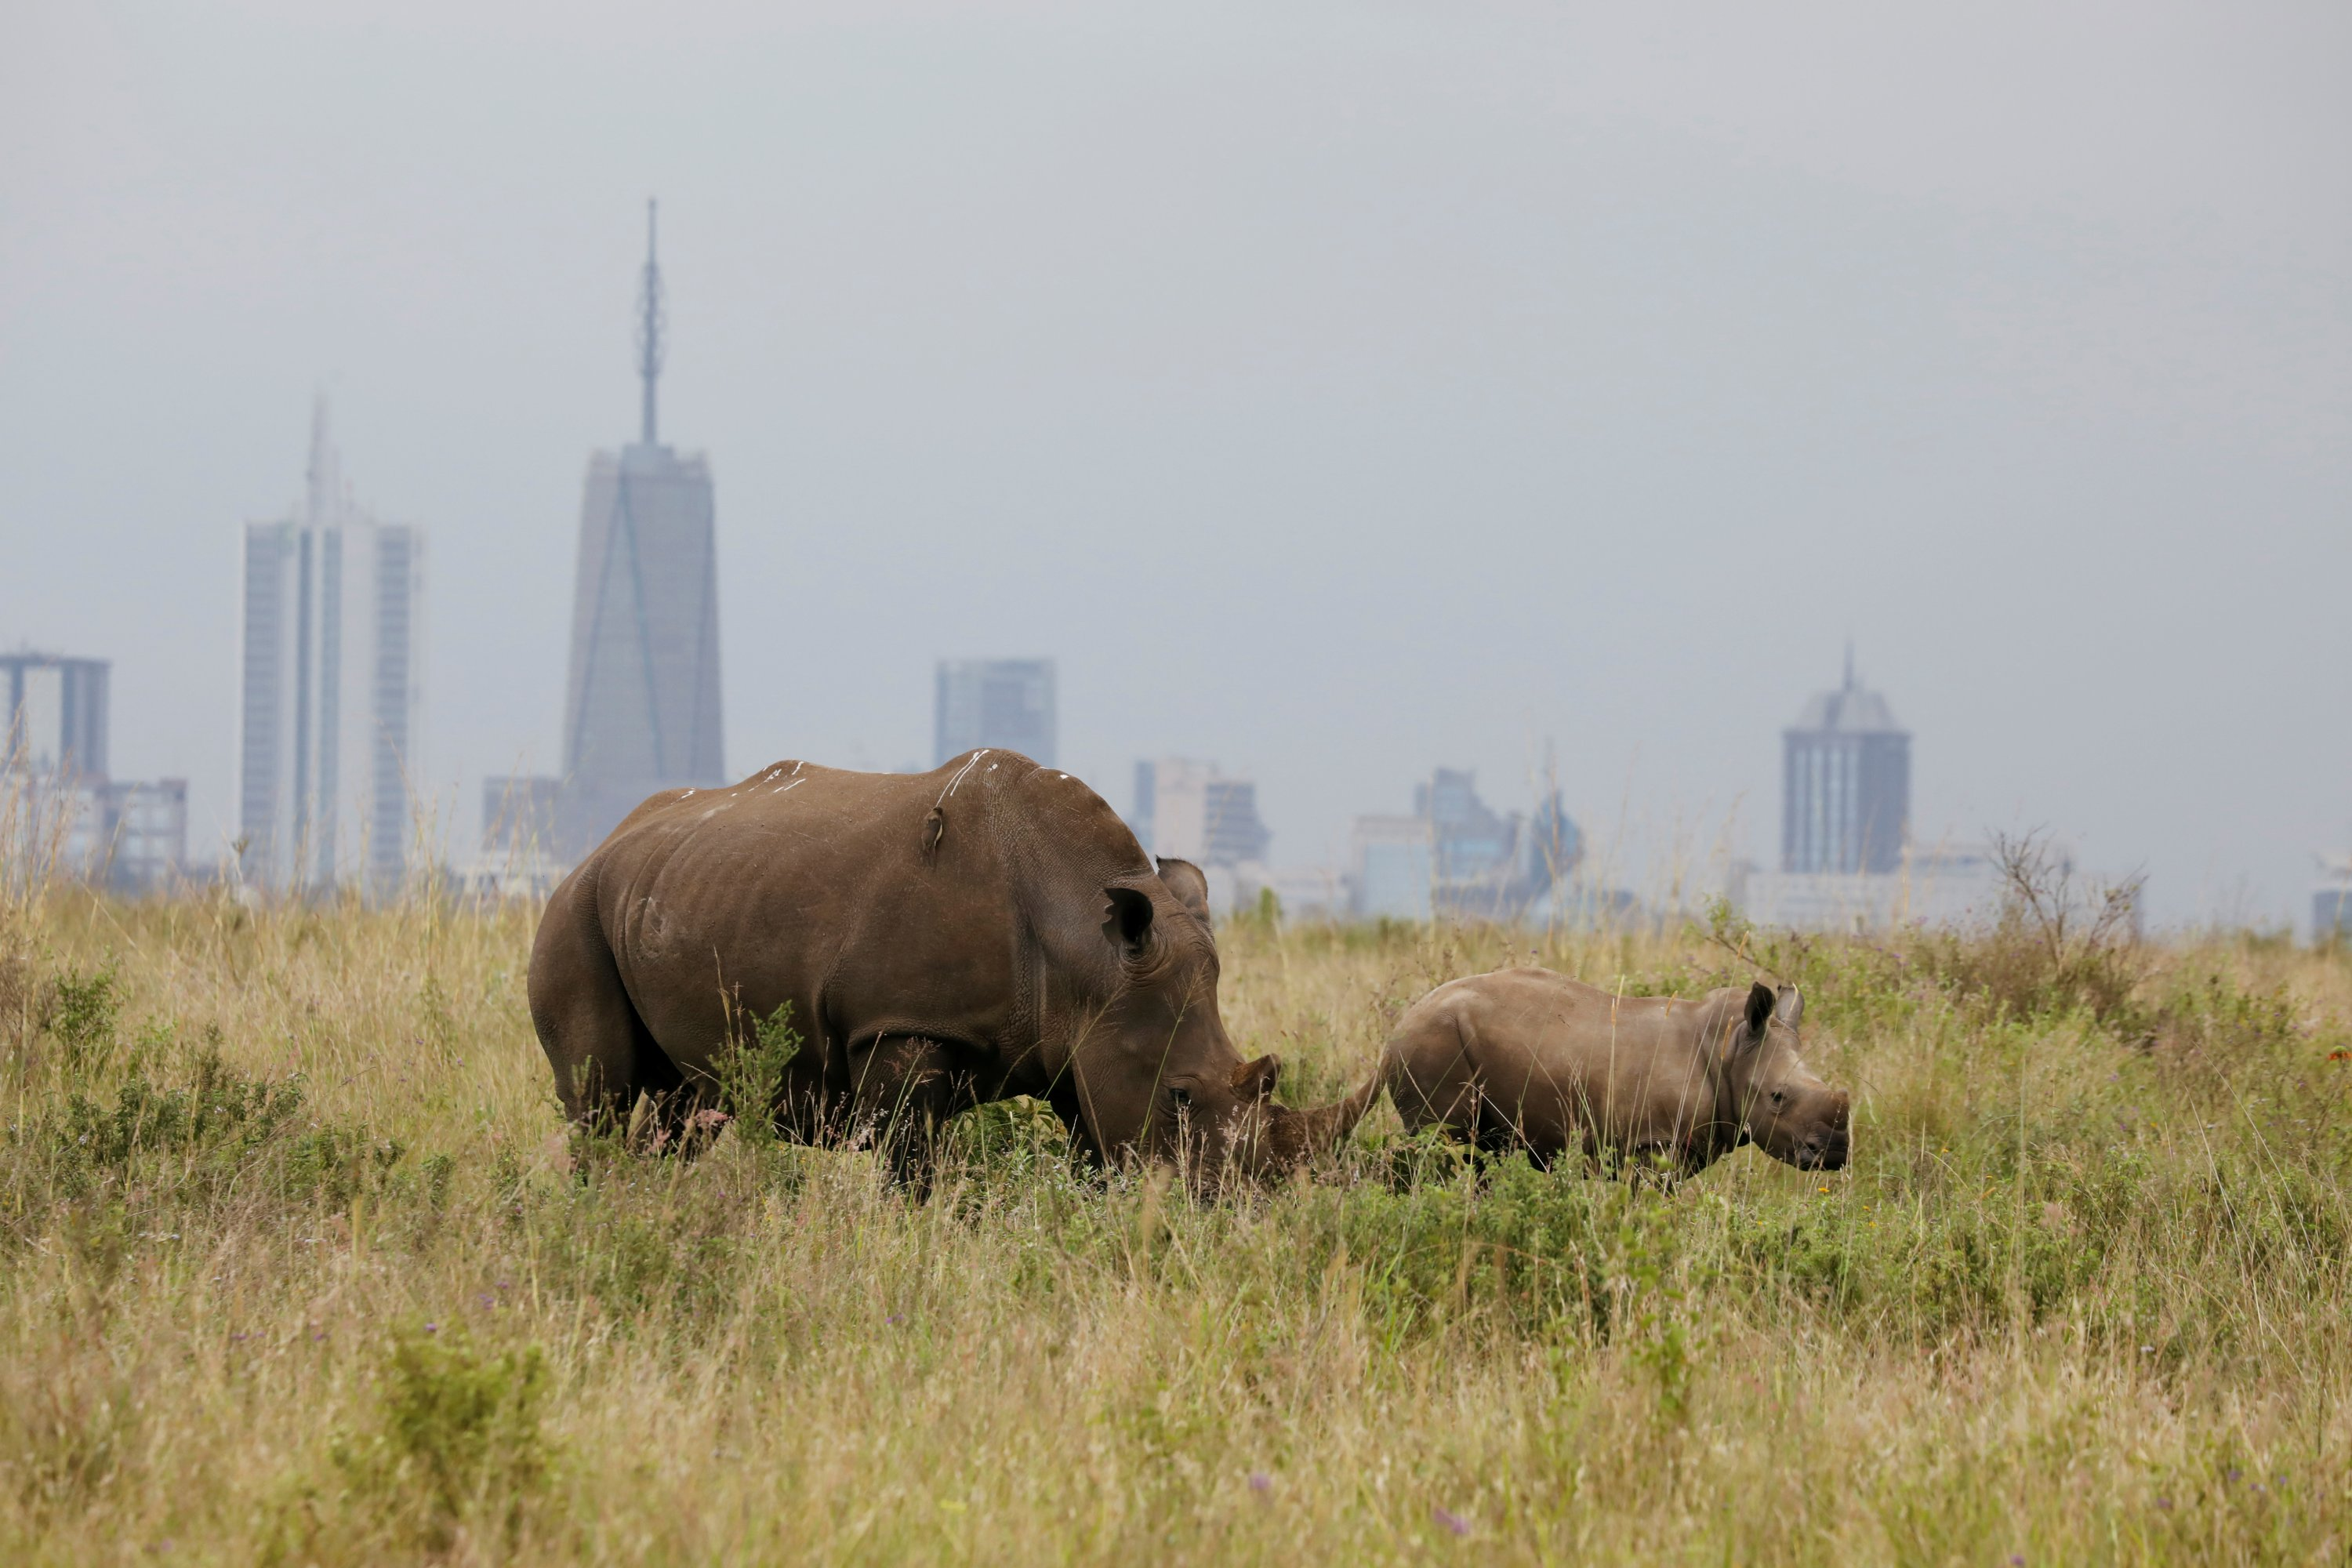 A southern white rhino and her calf are seen inside the Nairobi National Park with the Nairobi skyline in the background, in Nairobi, Kenya, June 15, 2020. (Reuters Photo)